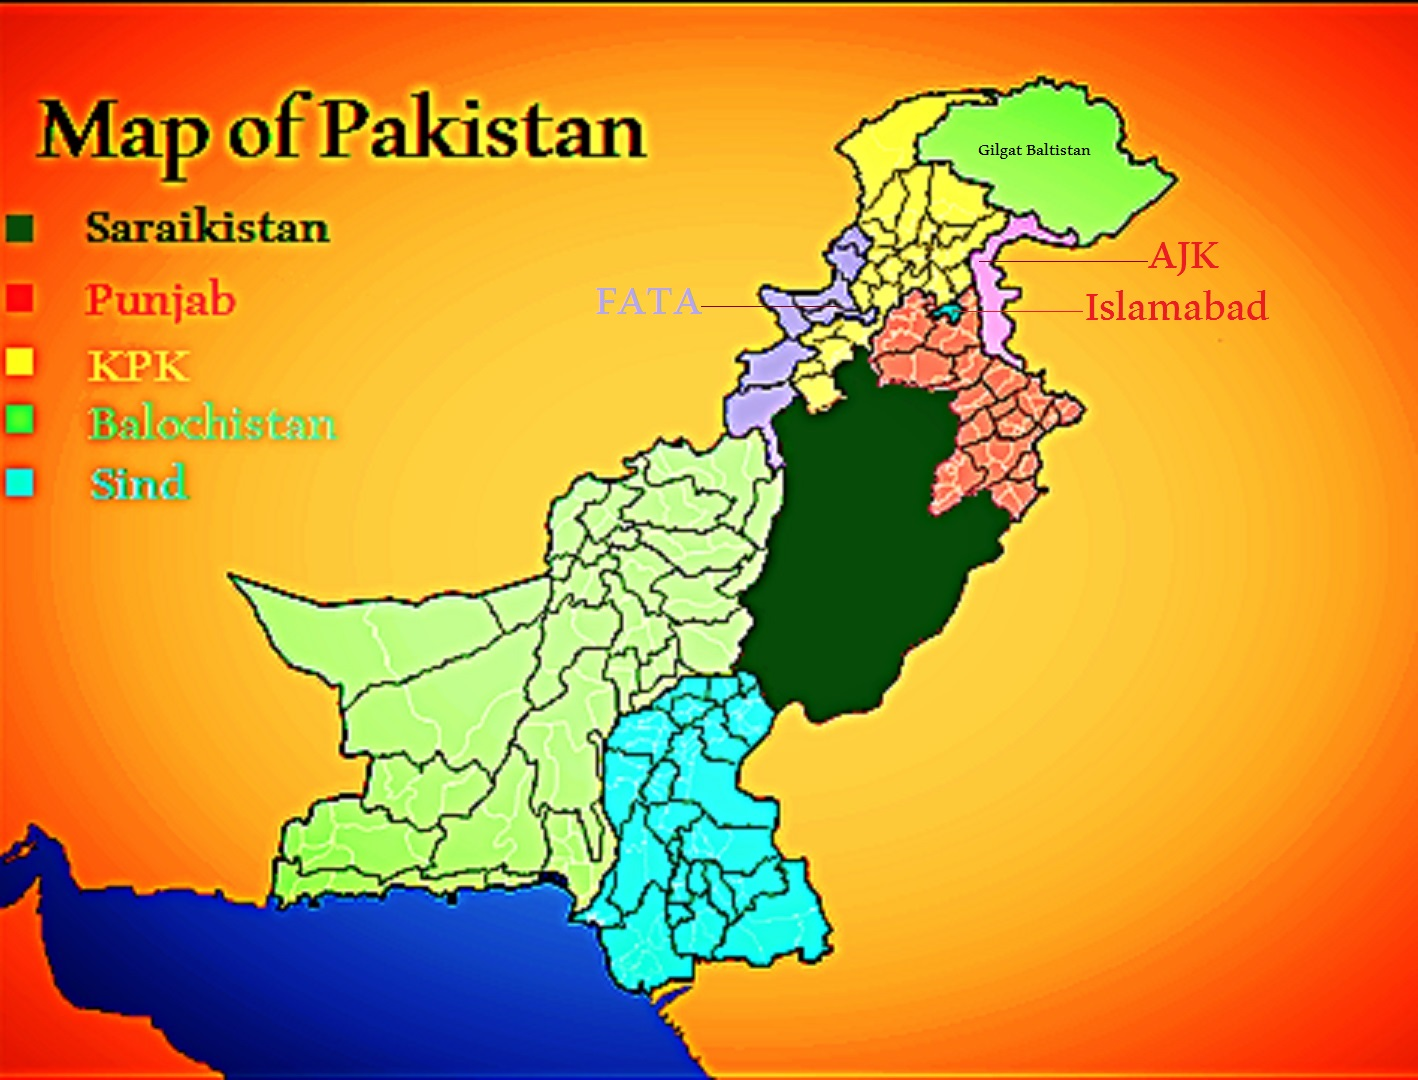 Regions in Pakistan